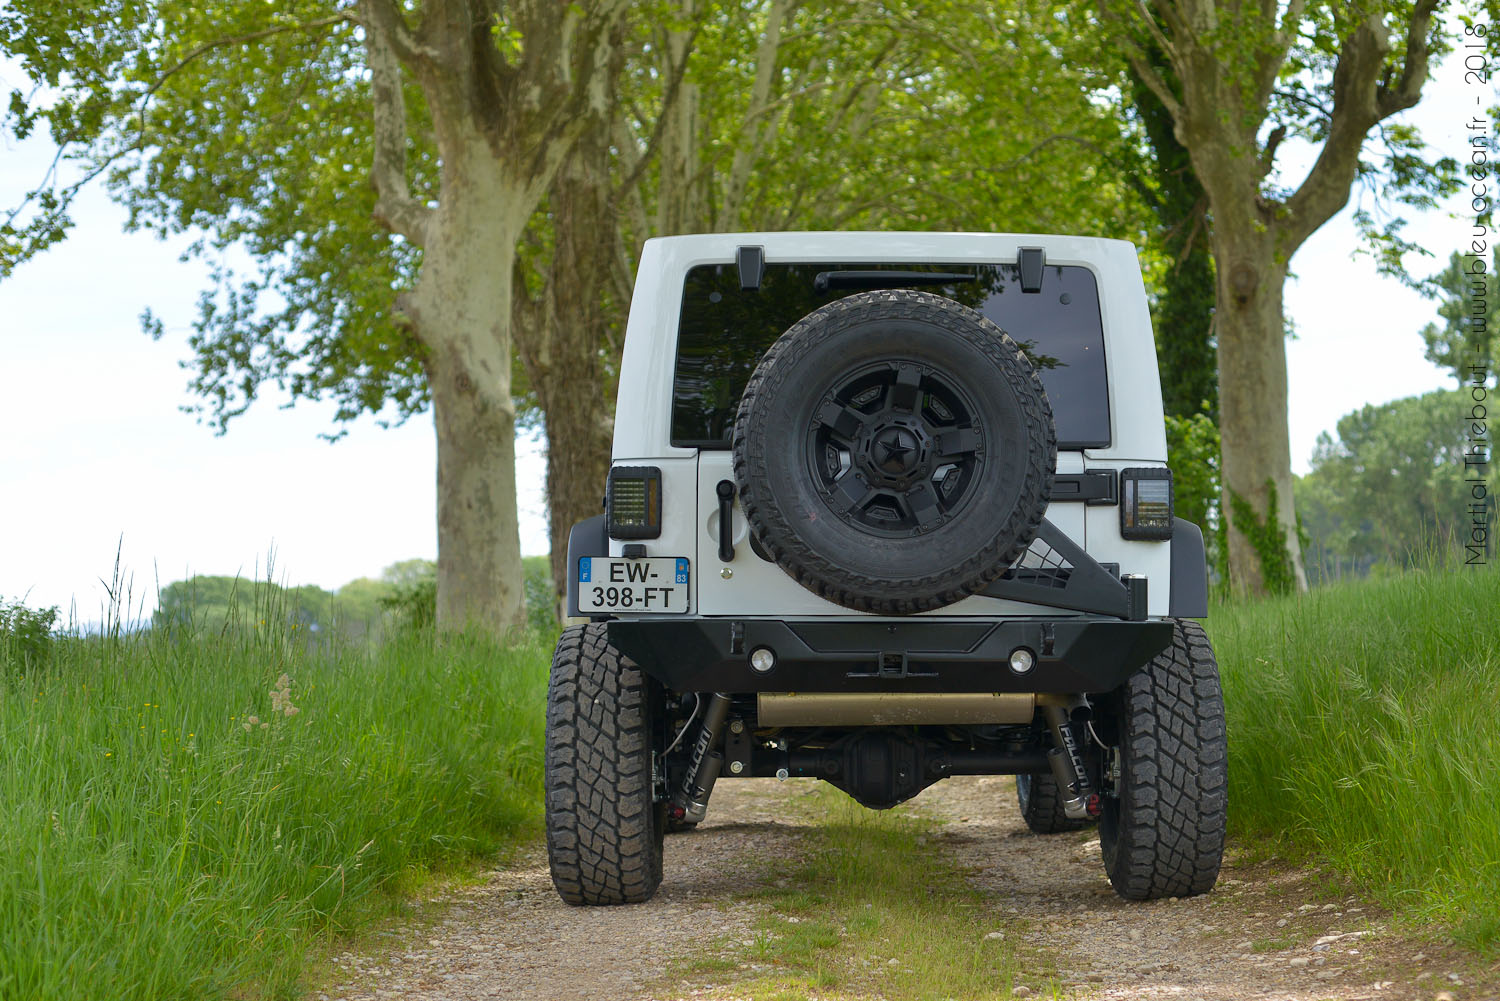 Jeep JK Wrangler Recon - Teraflex - V6 - Trail Rated - Banks Ram-Air